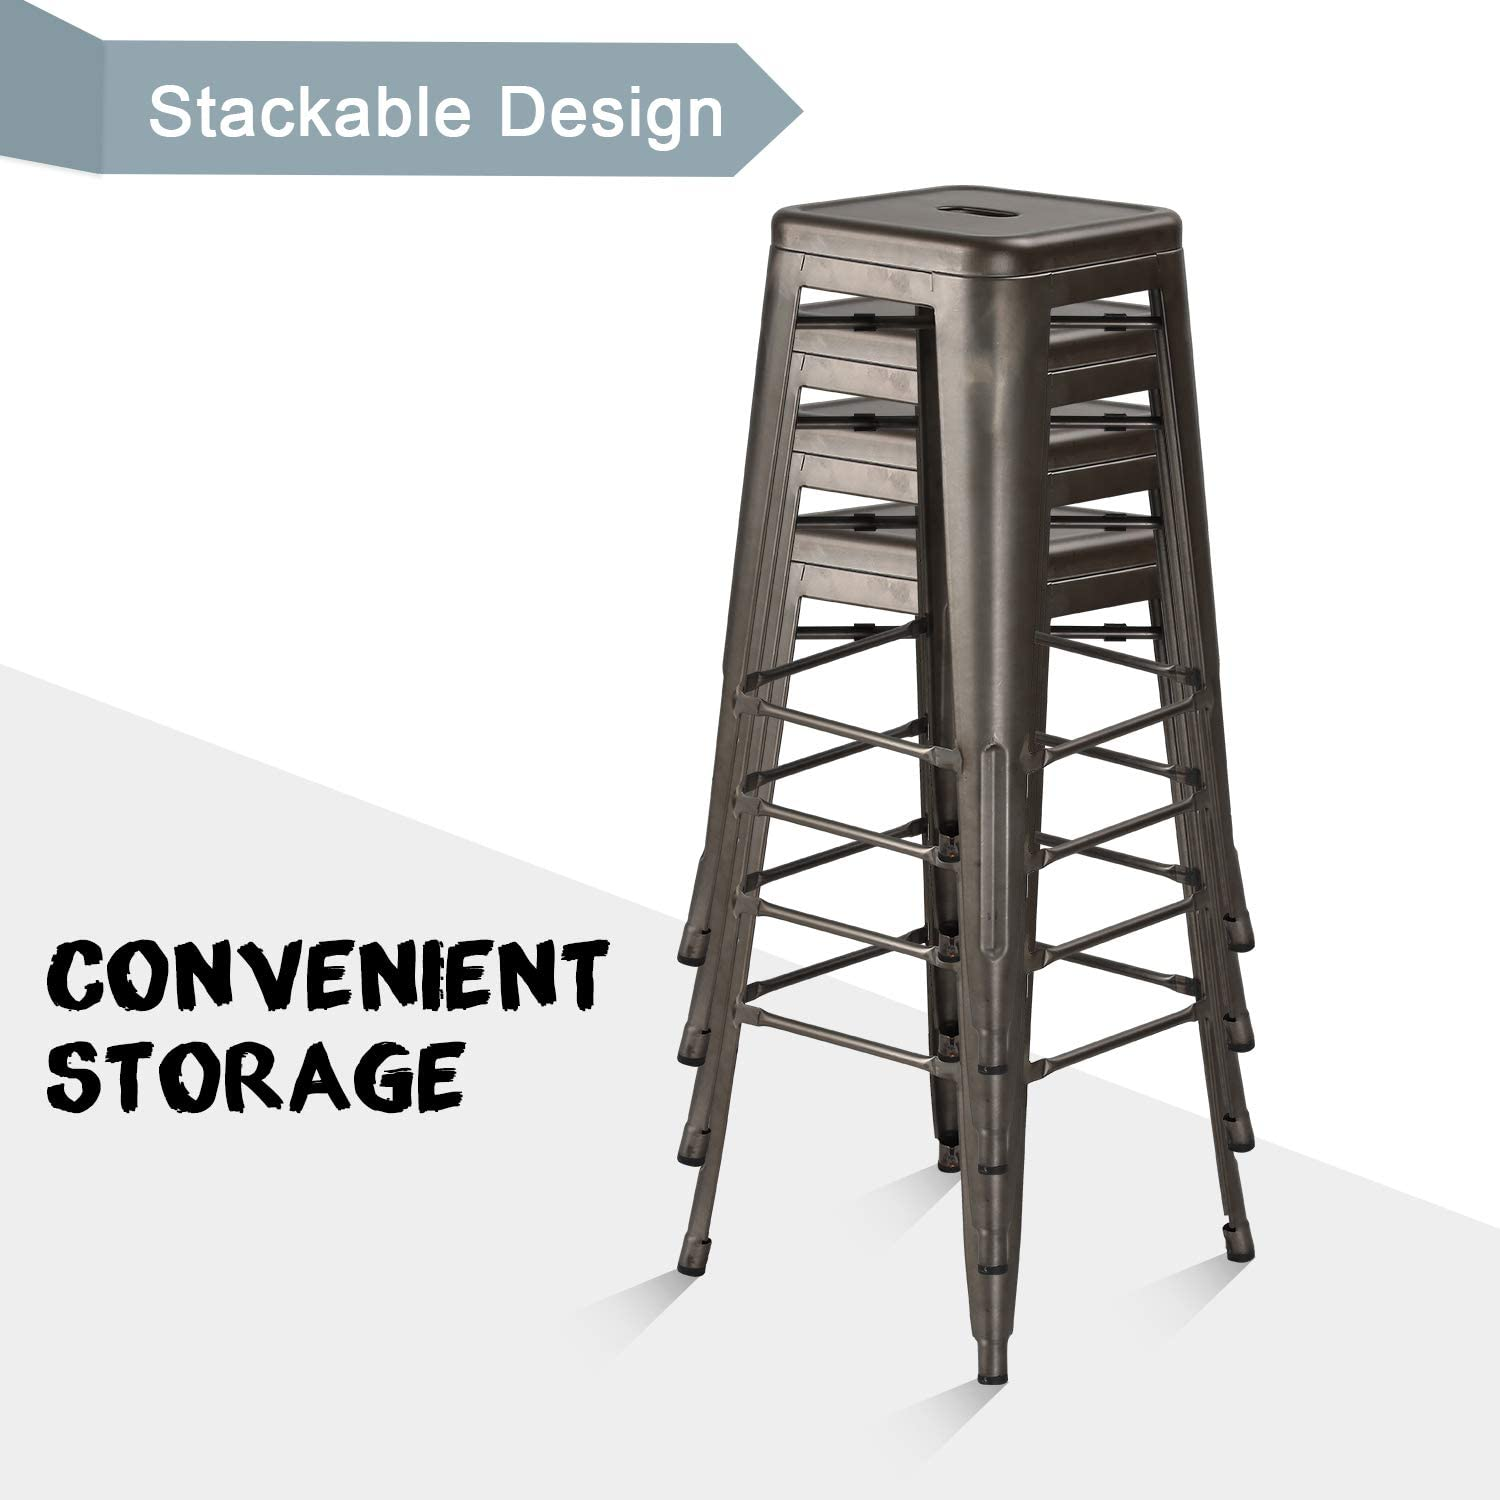 Waleaf 30 inches Metal Stools Indoor//Outdoor Counter Height Stackable Bar Stool Modern Style Restaurant Cafe Chic Bistro Stool Set of 4 Black